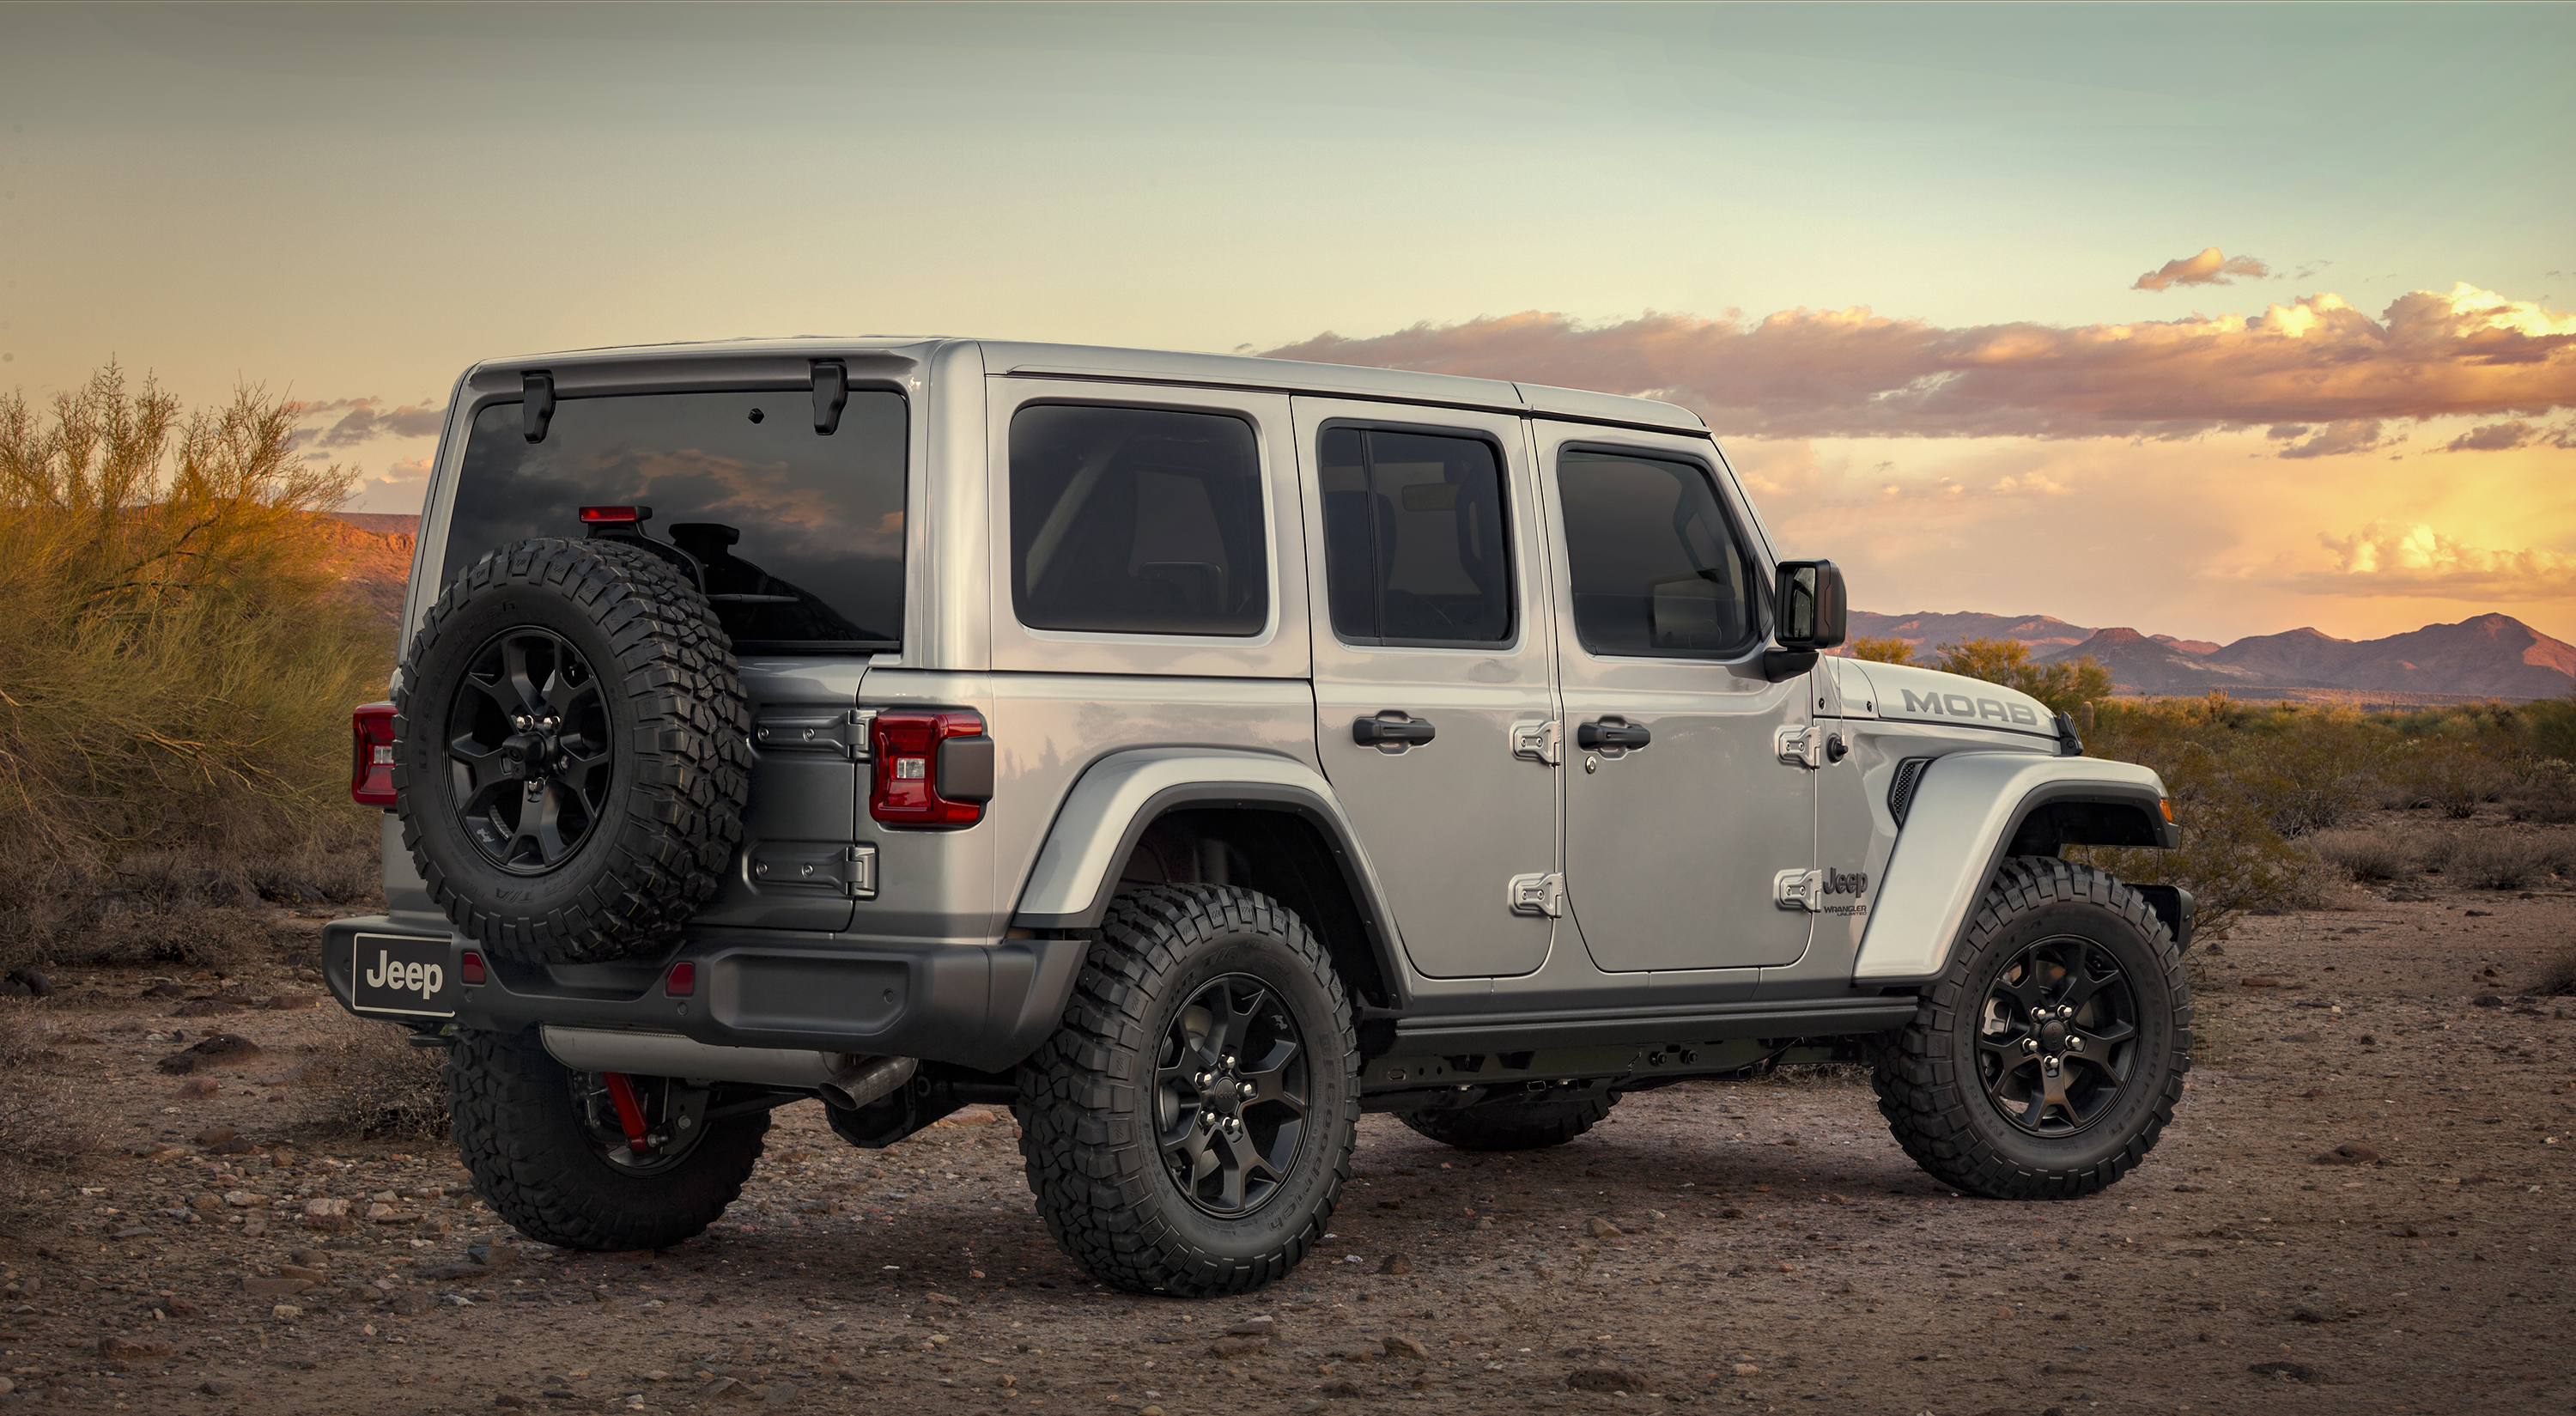 33 New Jeep Moab 2020 Specs and Review for Jeep Moab 2020